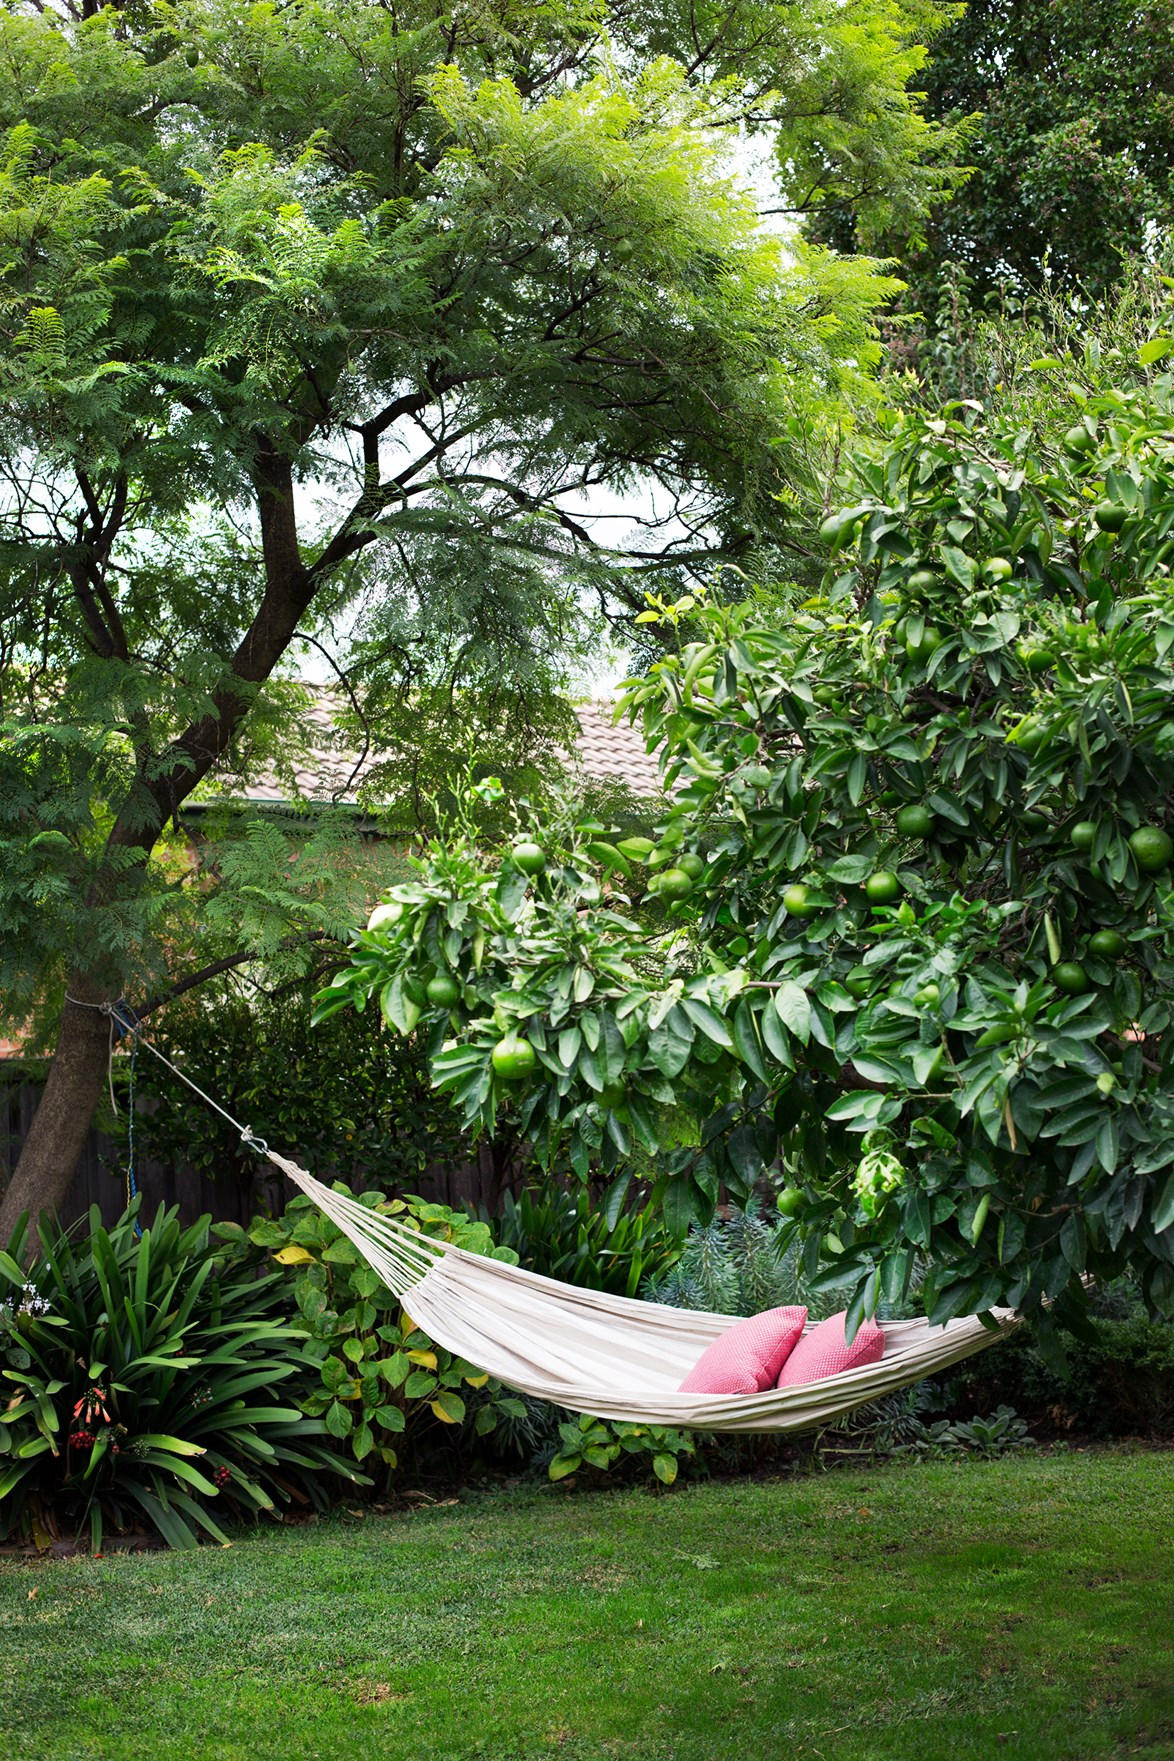 From the place you'd rather be: swinging on a hammock amid flourishing oranges in a [Moroccan inspired garden](http://www.homestolove.com.au/a-multi-functional-family-garden-4400). *Photo: Martina Gemmola / Australian House & Garden*